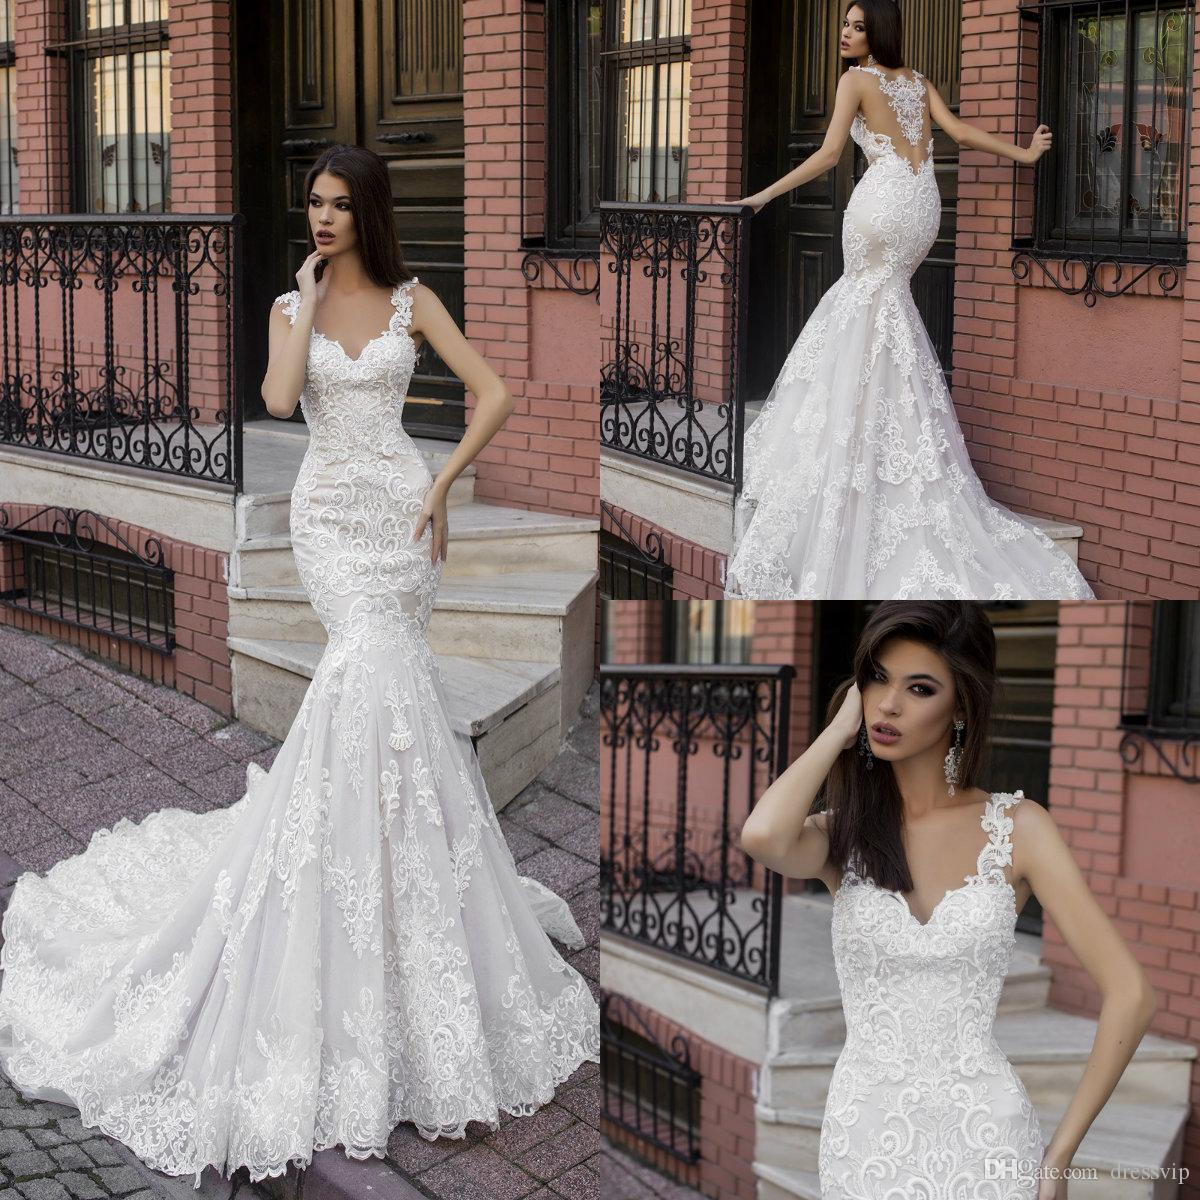 f9cb08804f 2019 Gorgeous Mermaid Wedding Dresses Lace Applique Sexy Back Sweep Train  Country Wedding Dress Custom Made Illusion Plus Size Bridal Gowns Modest  Wedding ...